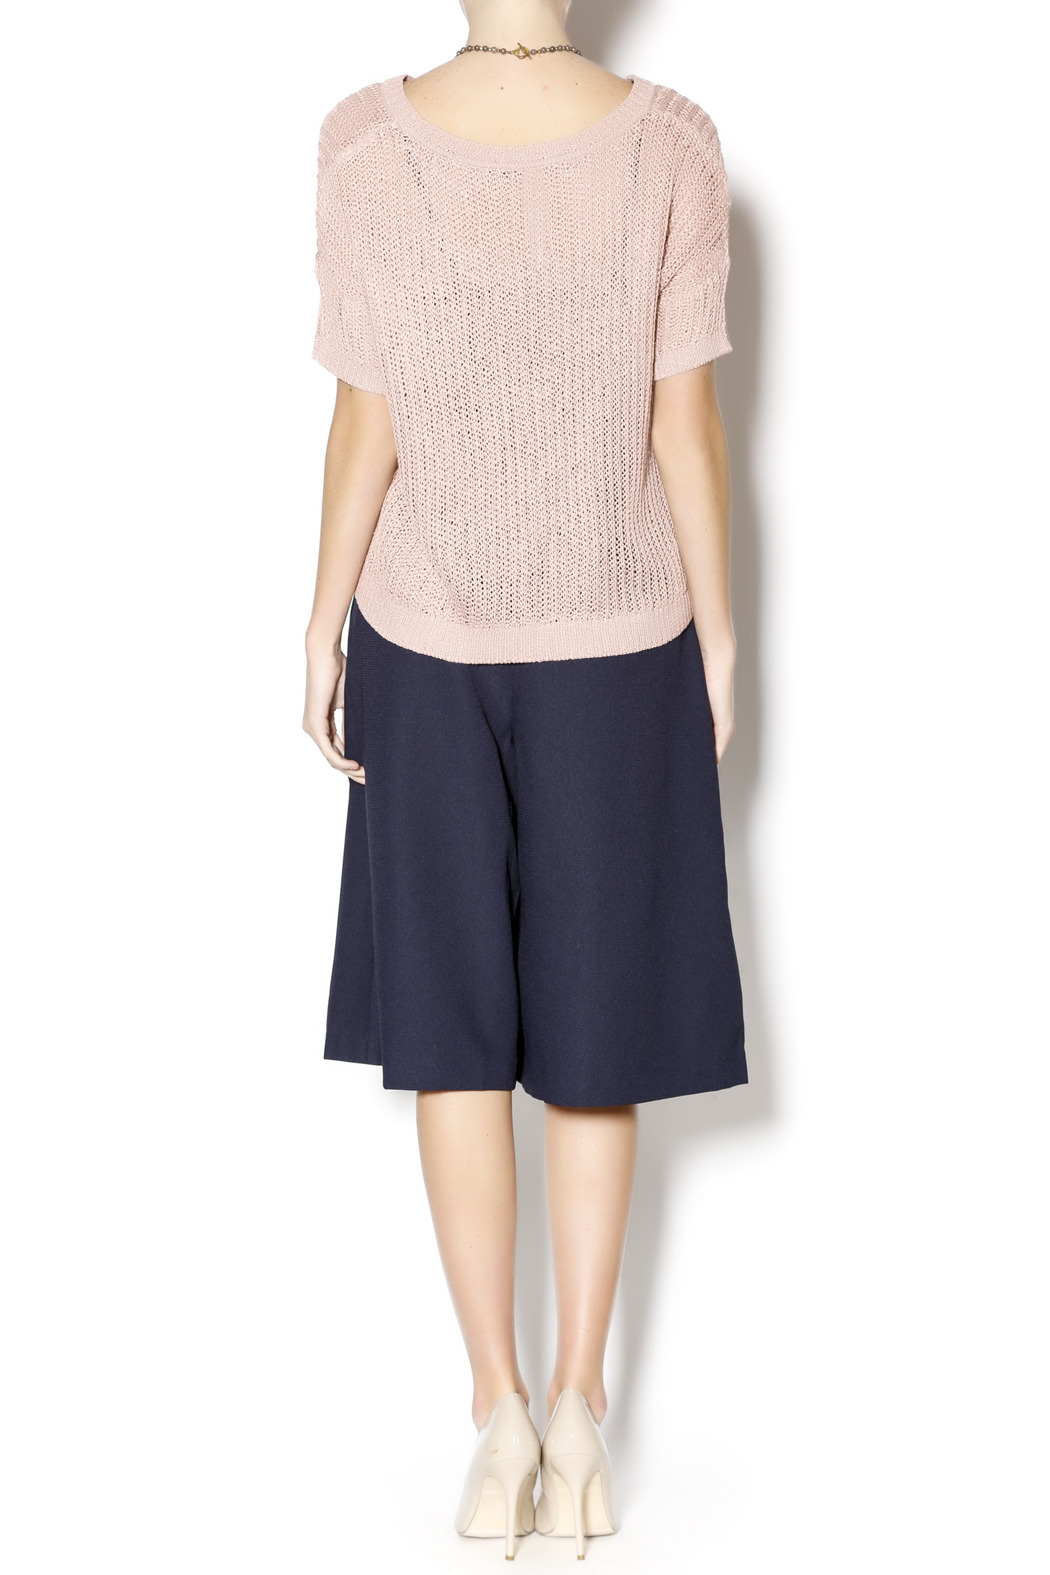 Kensie Blush Knit Sweater - Side Cropped Image